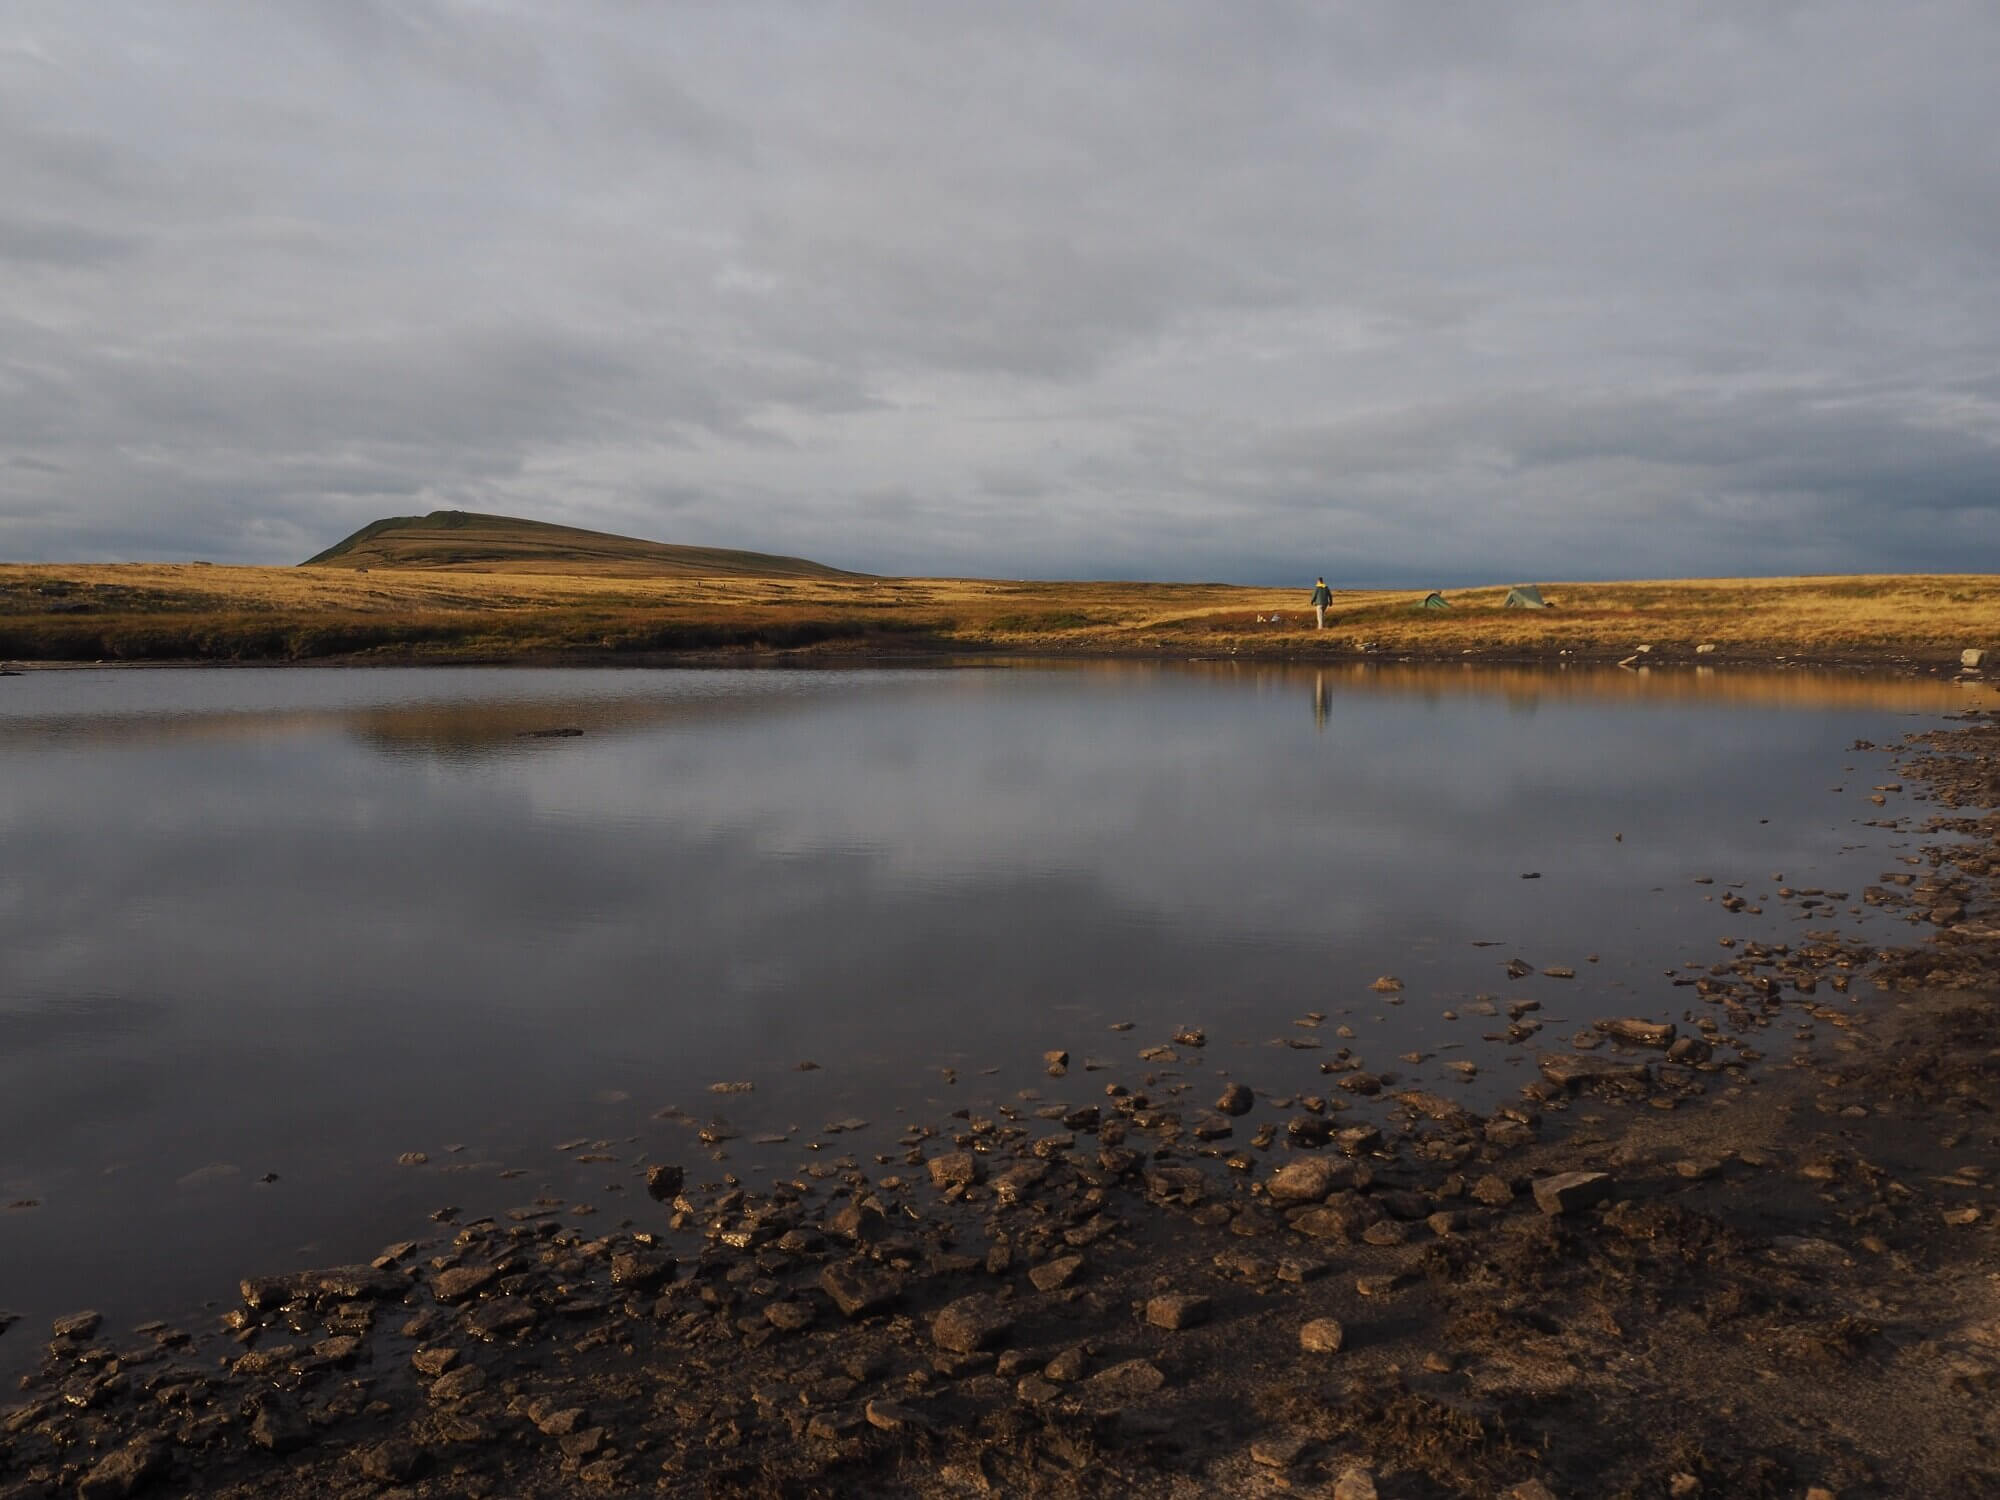 One of the Whernside Tarns with Whernside in the distance